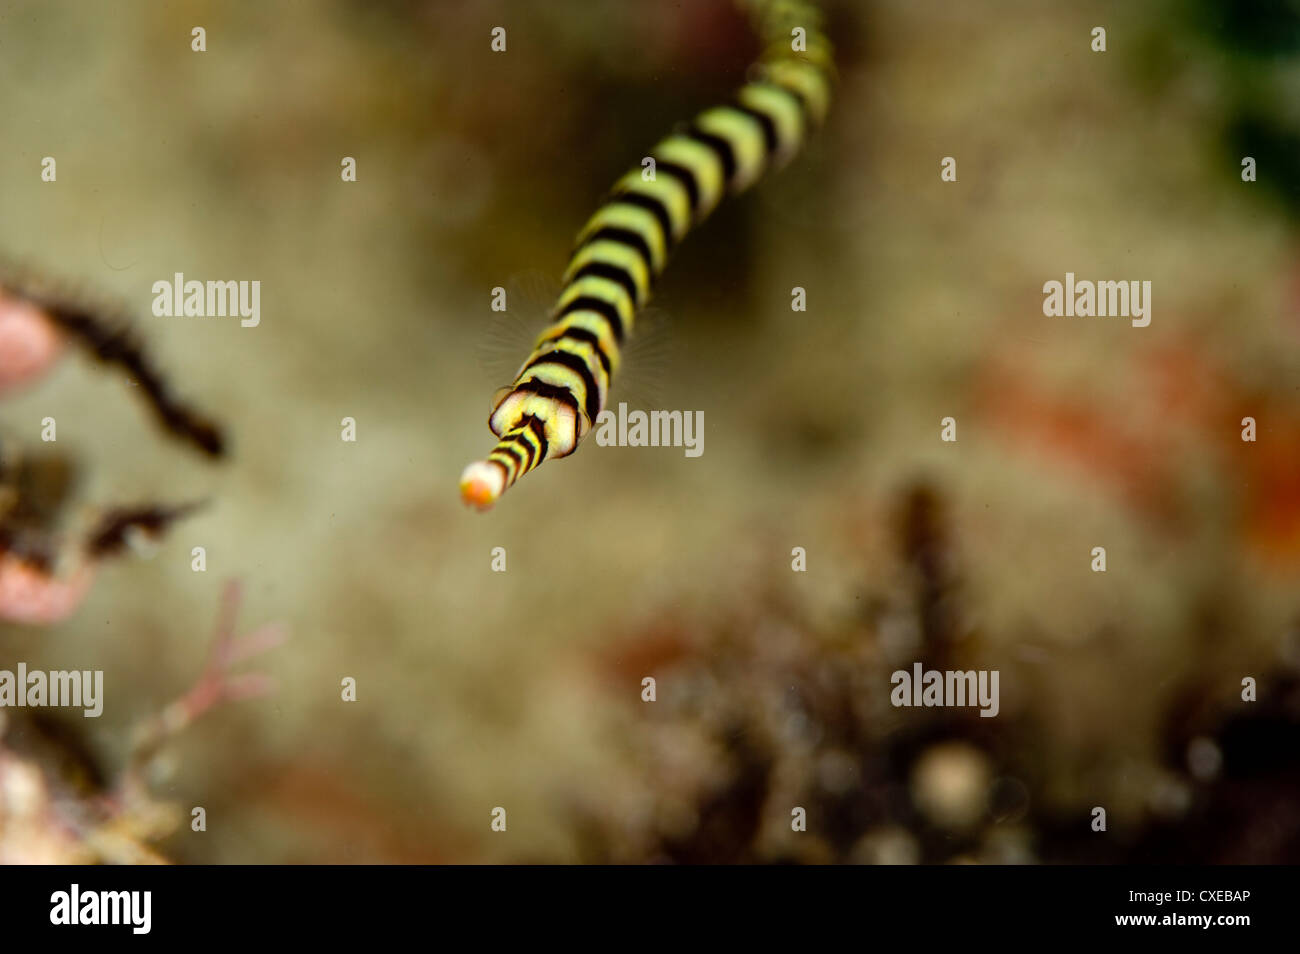 Ringed pipefish (Dunckerocampus dactyliophorus), grows to 18cm, Indo-Pacific waters, Philippines, Southeast Asia, - Stock Image